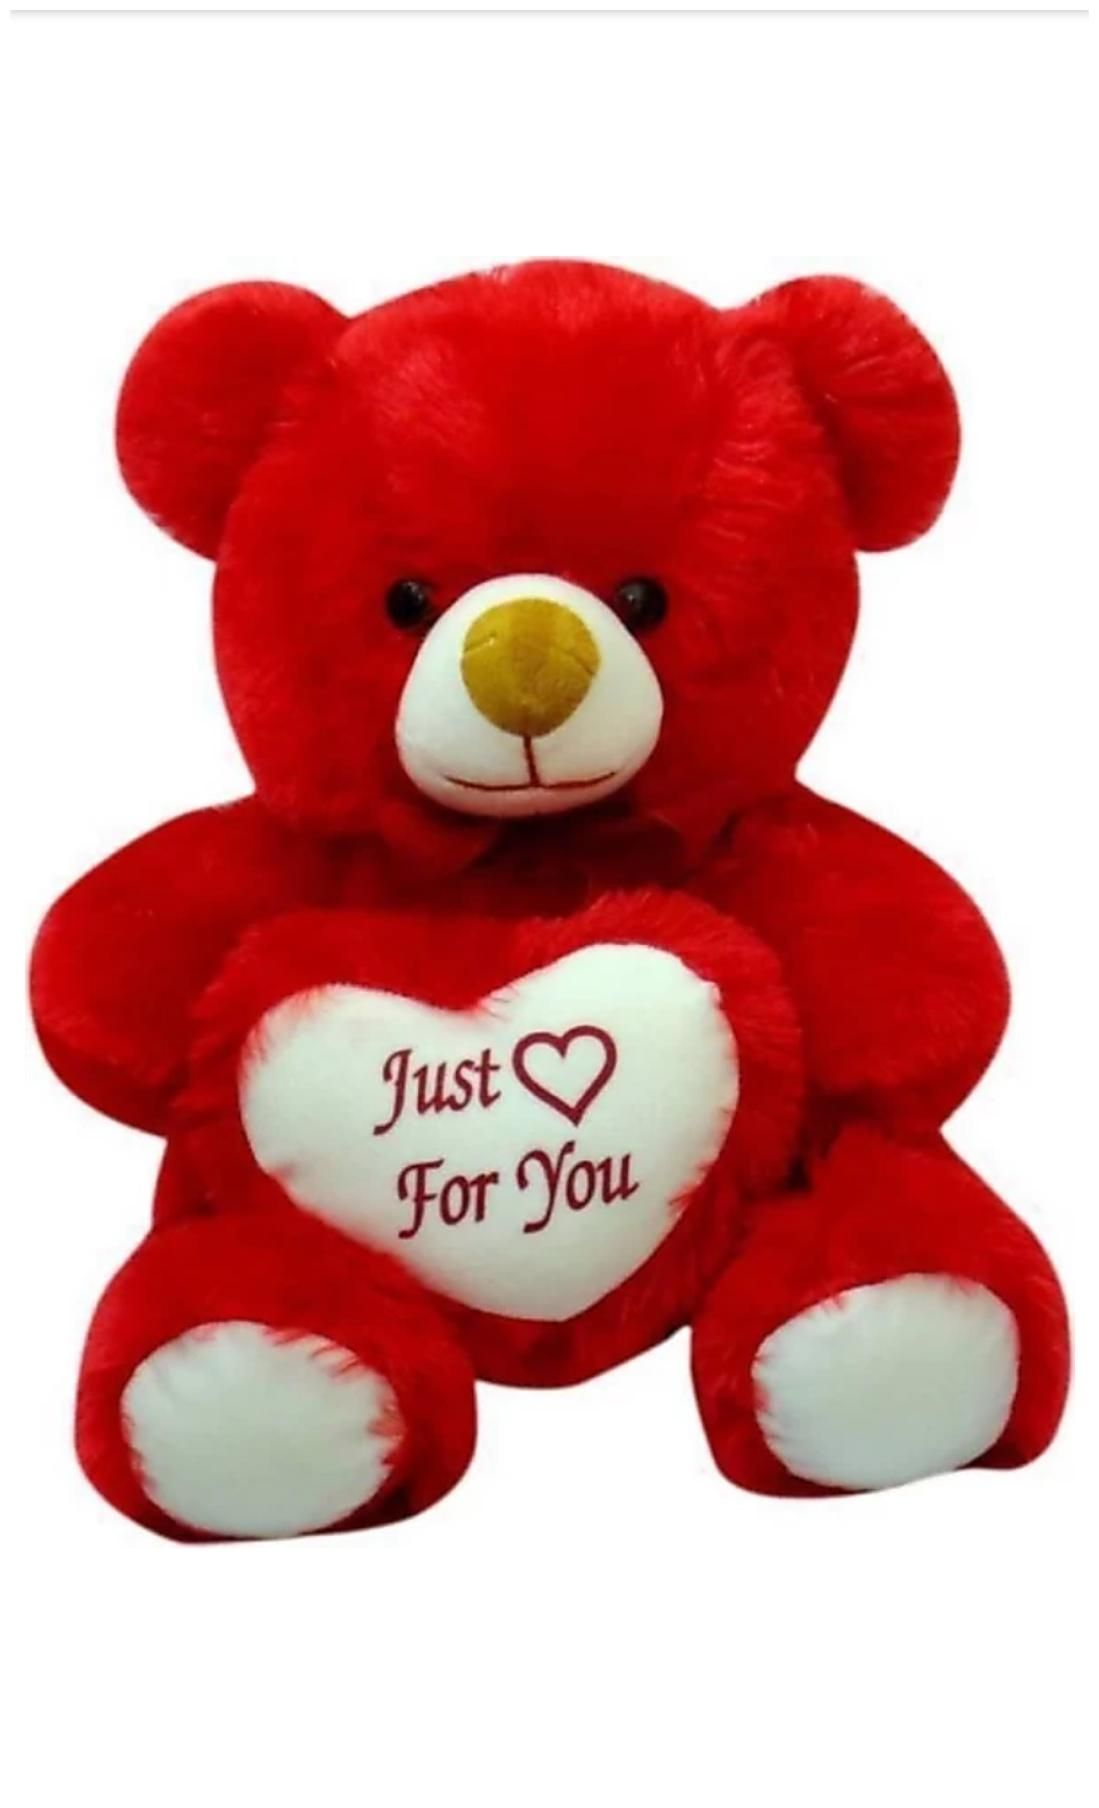 Buy A P Traders Red Color Soft Teddy Bear With White Heart 45 Cm By Undefined On Paytm Price R Cute Teddy Bear Pics Teddy Bear Images Teddy Bear Wallpaper